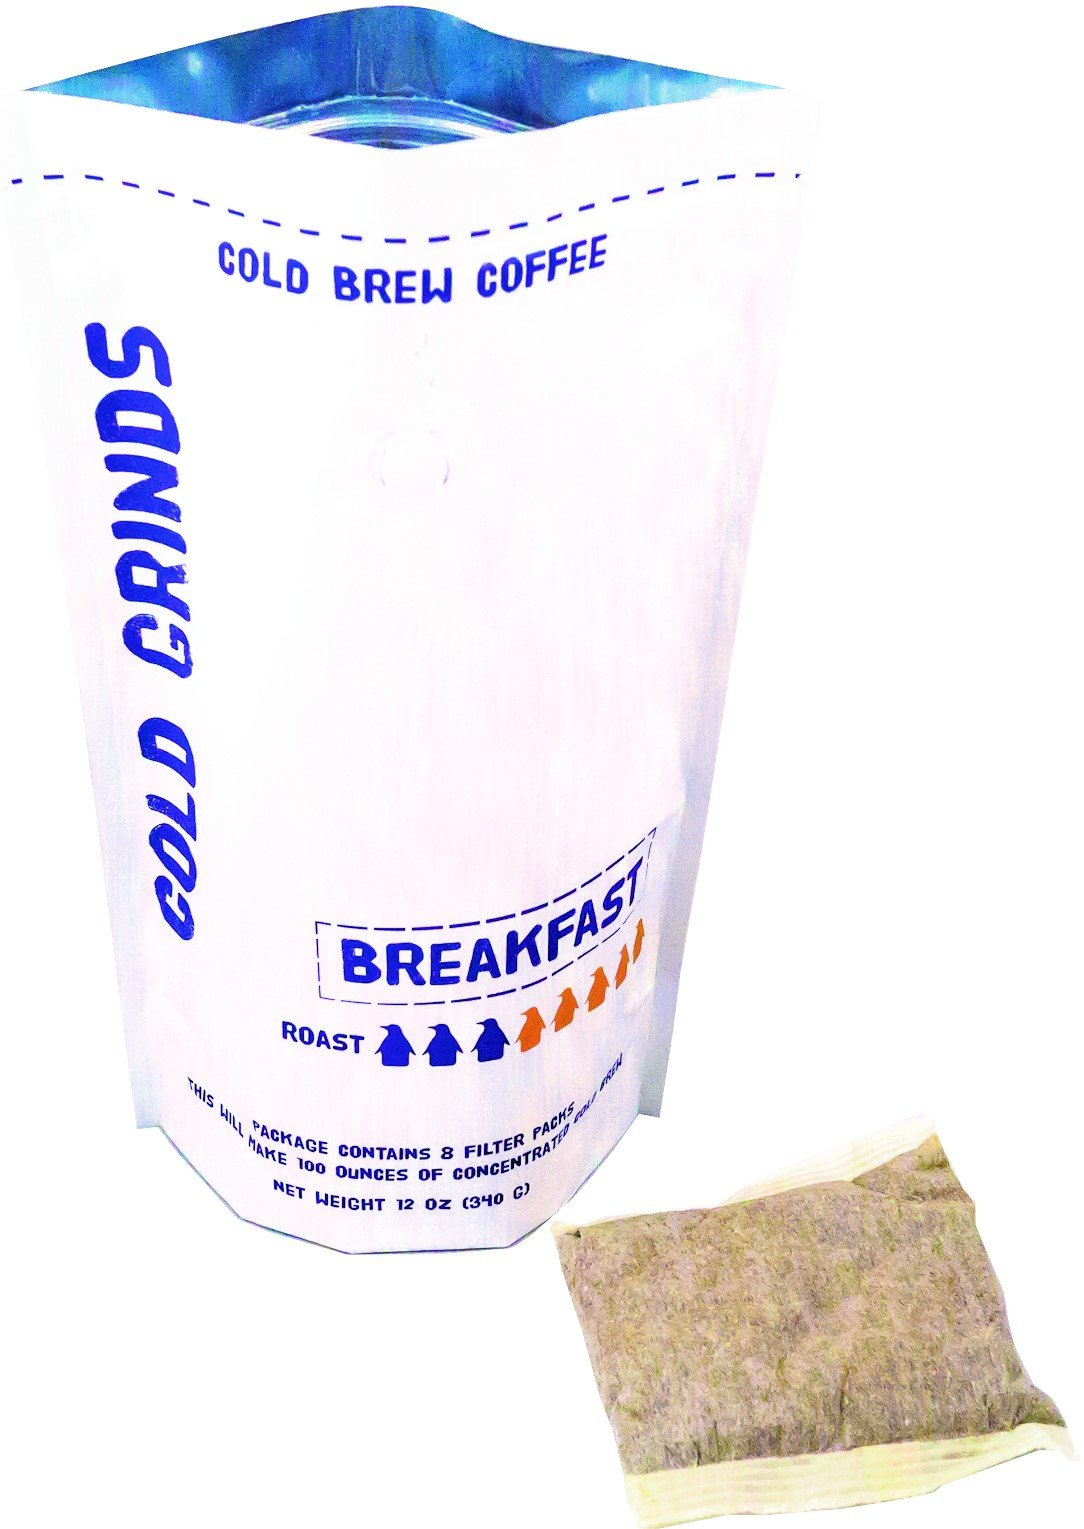 Cold Brew Coffee Packs - Easy at Home Brewing - Makes 100 oz of Smooth Cold Brew - 66% Less Acidic - Cold Grinds Breakfast Blend (Medium Roast)